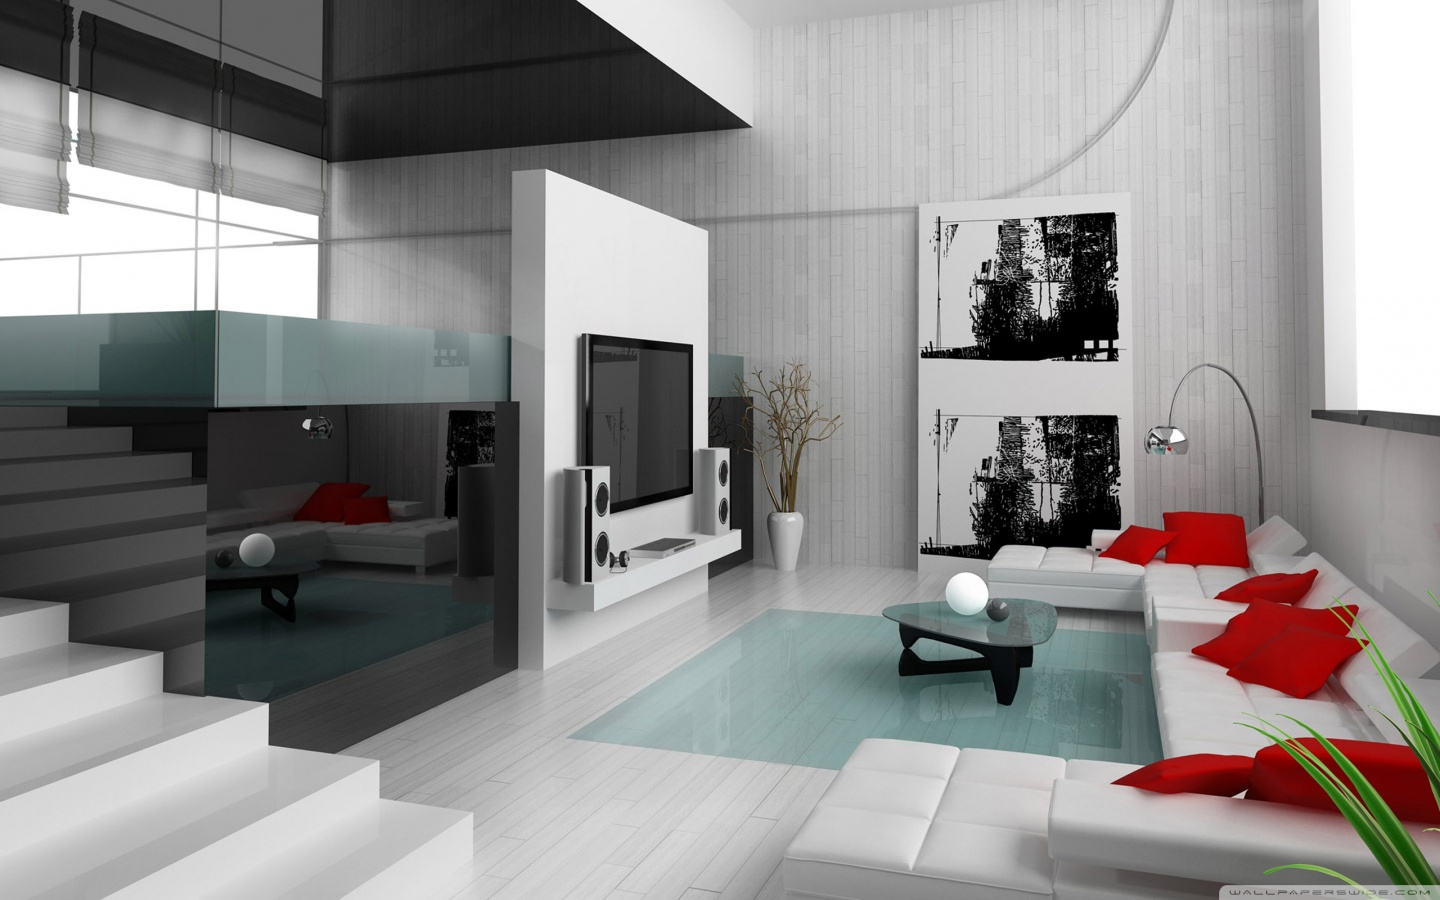 Minimalist interior design imagination art architecture for Minimalist style home